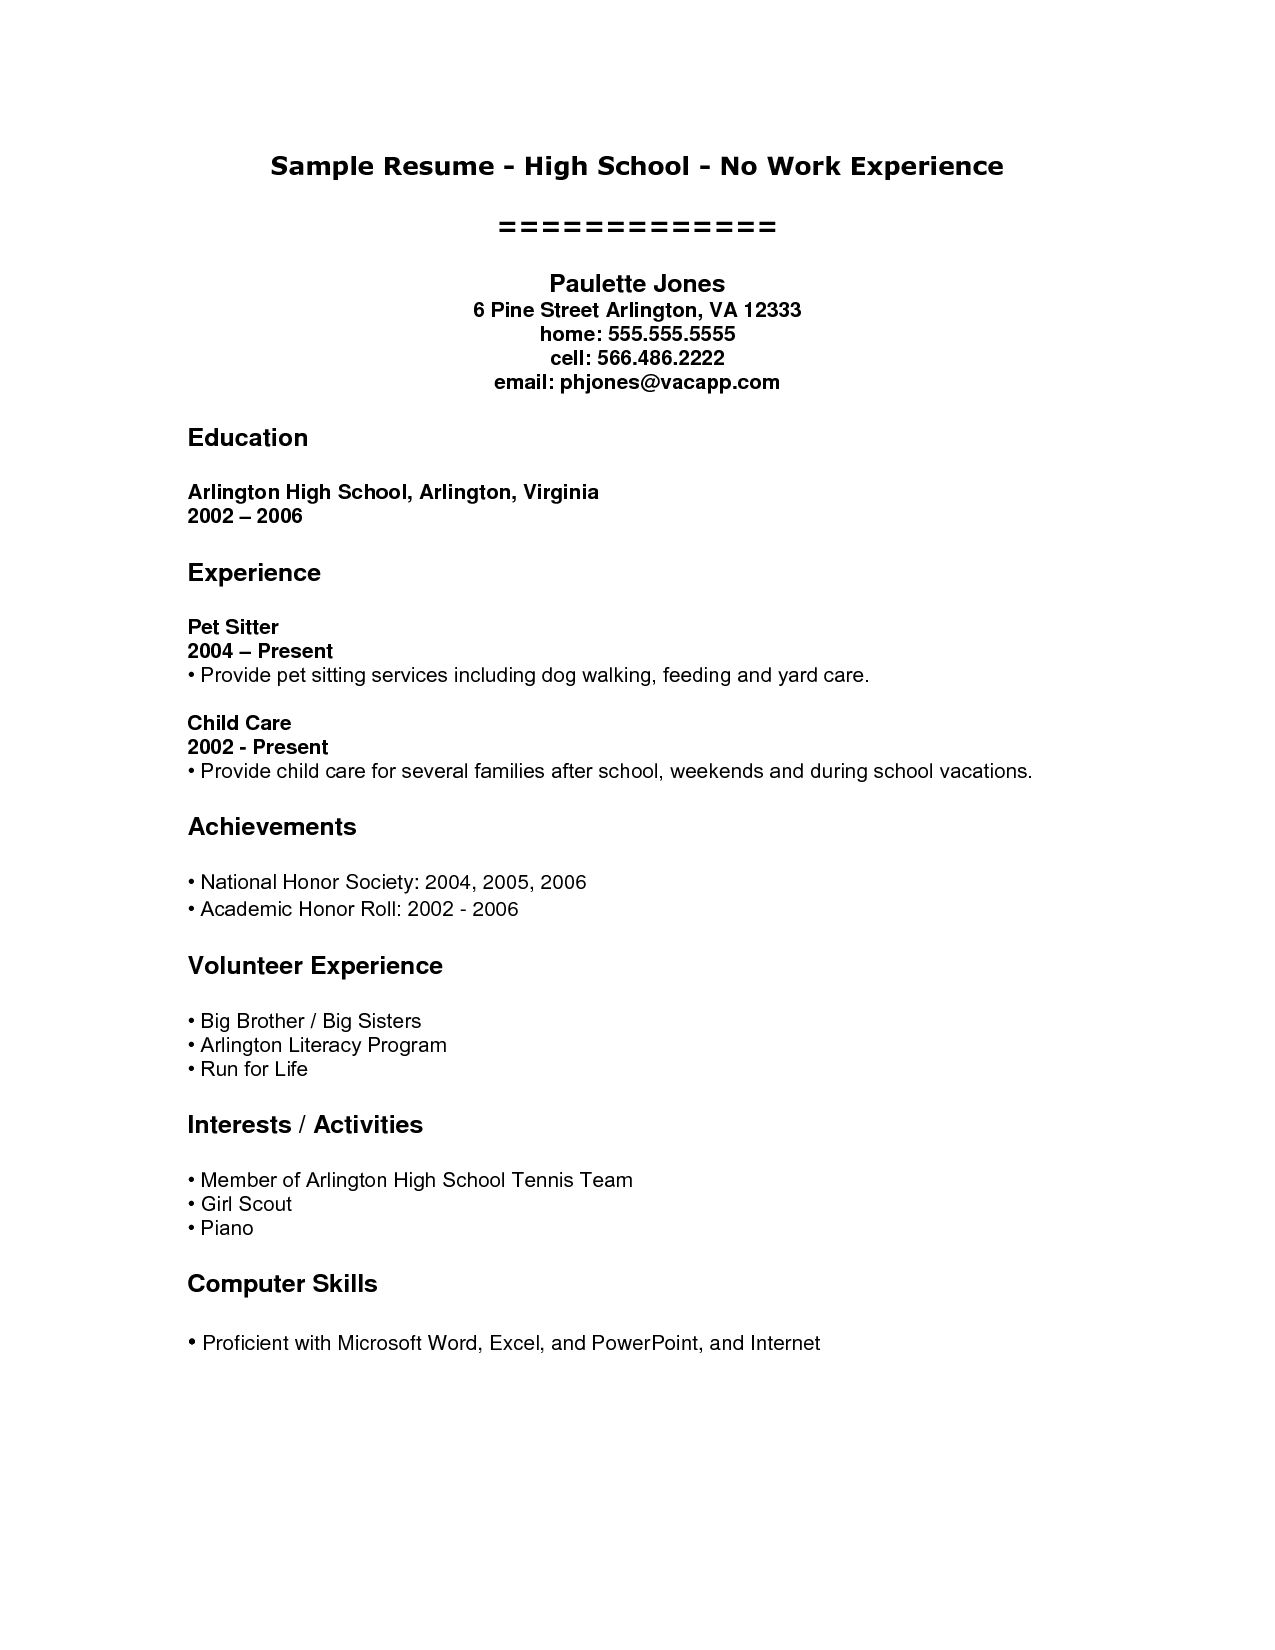 Student Resume Templates Free No Work Experience